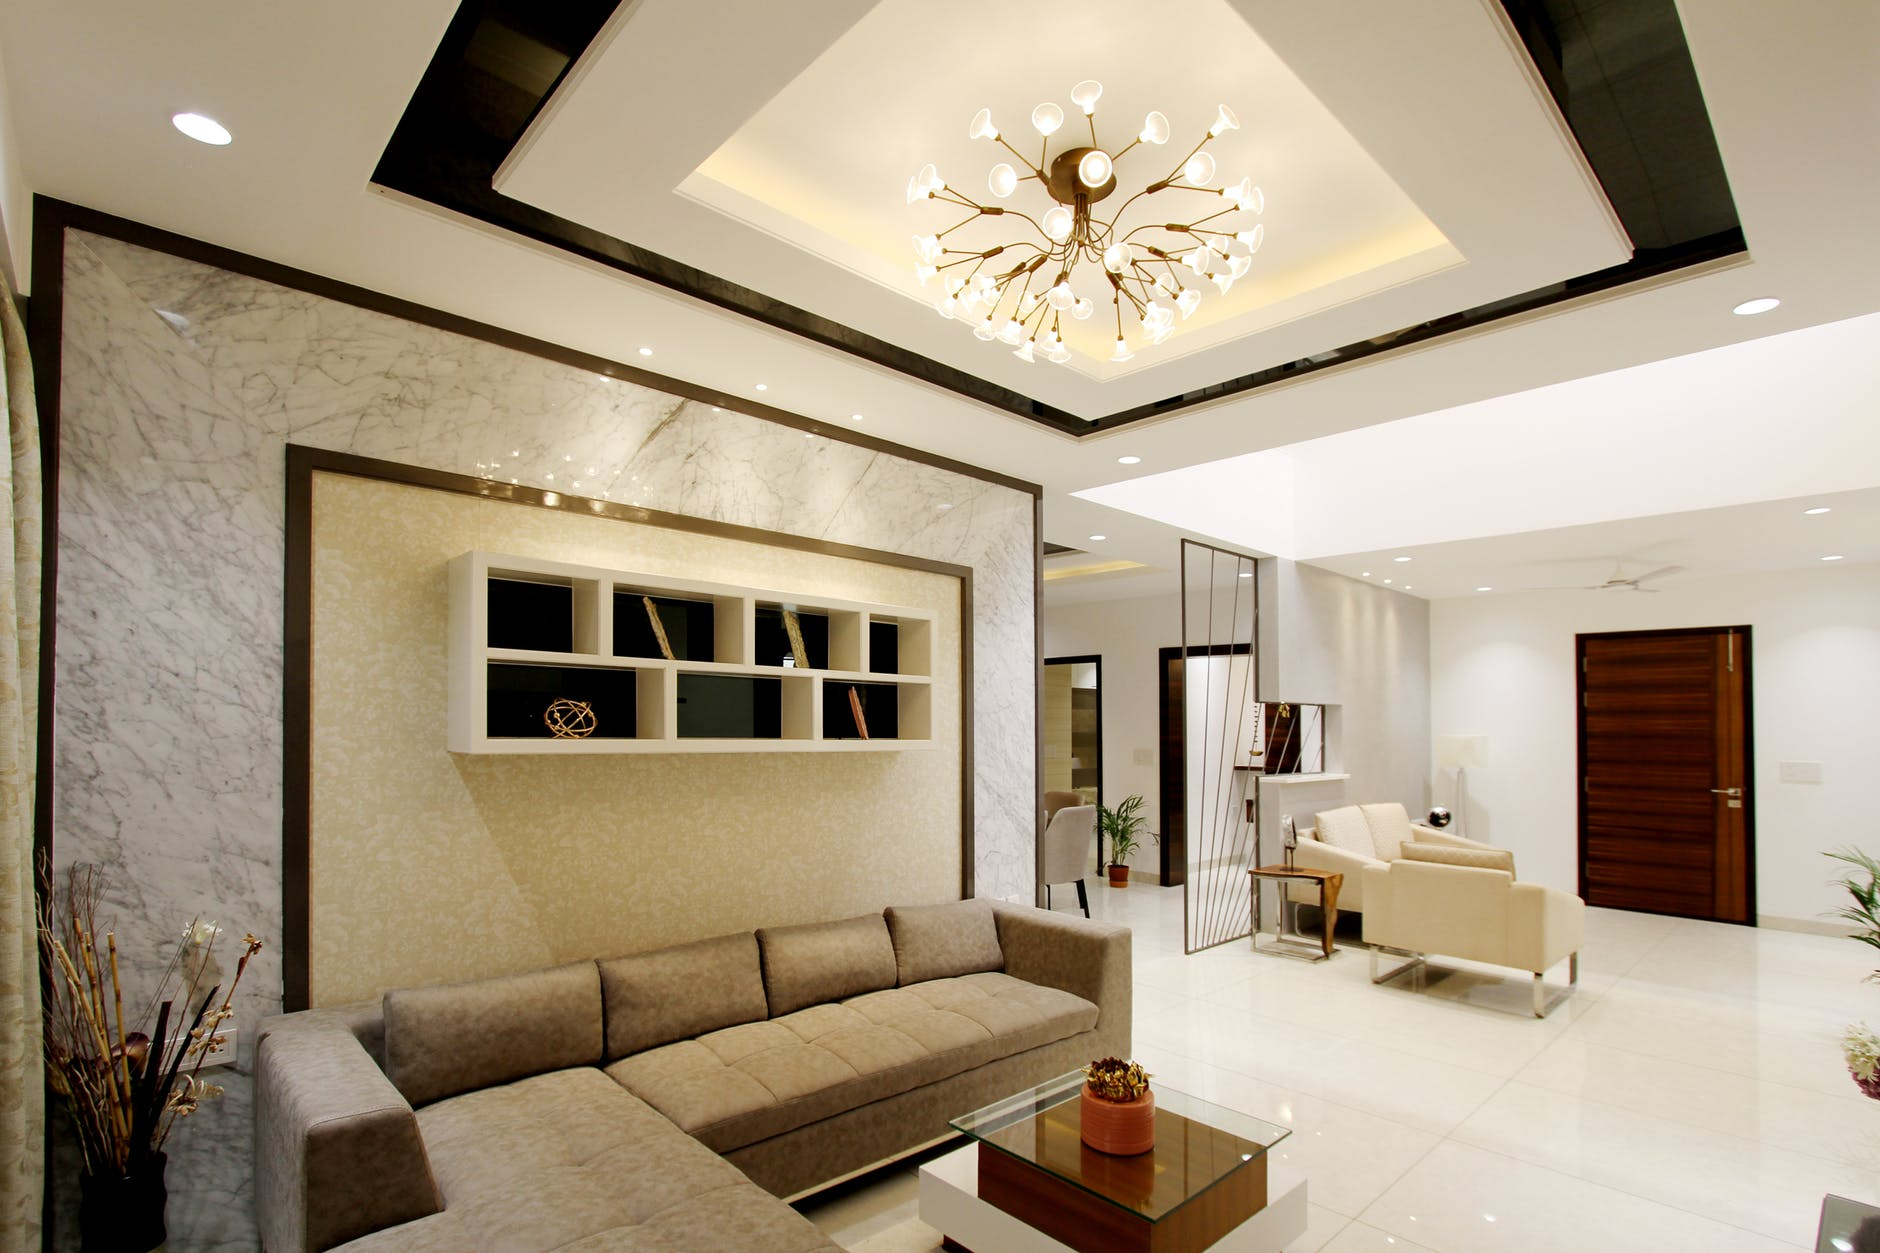 12 Attractive Ceiling Decoration Ideas You Should Try for Your Home Design